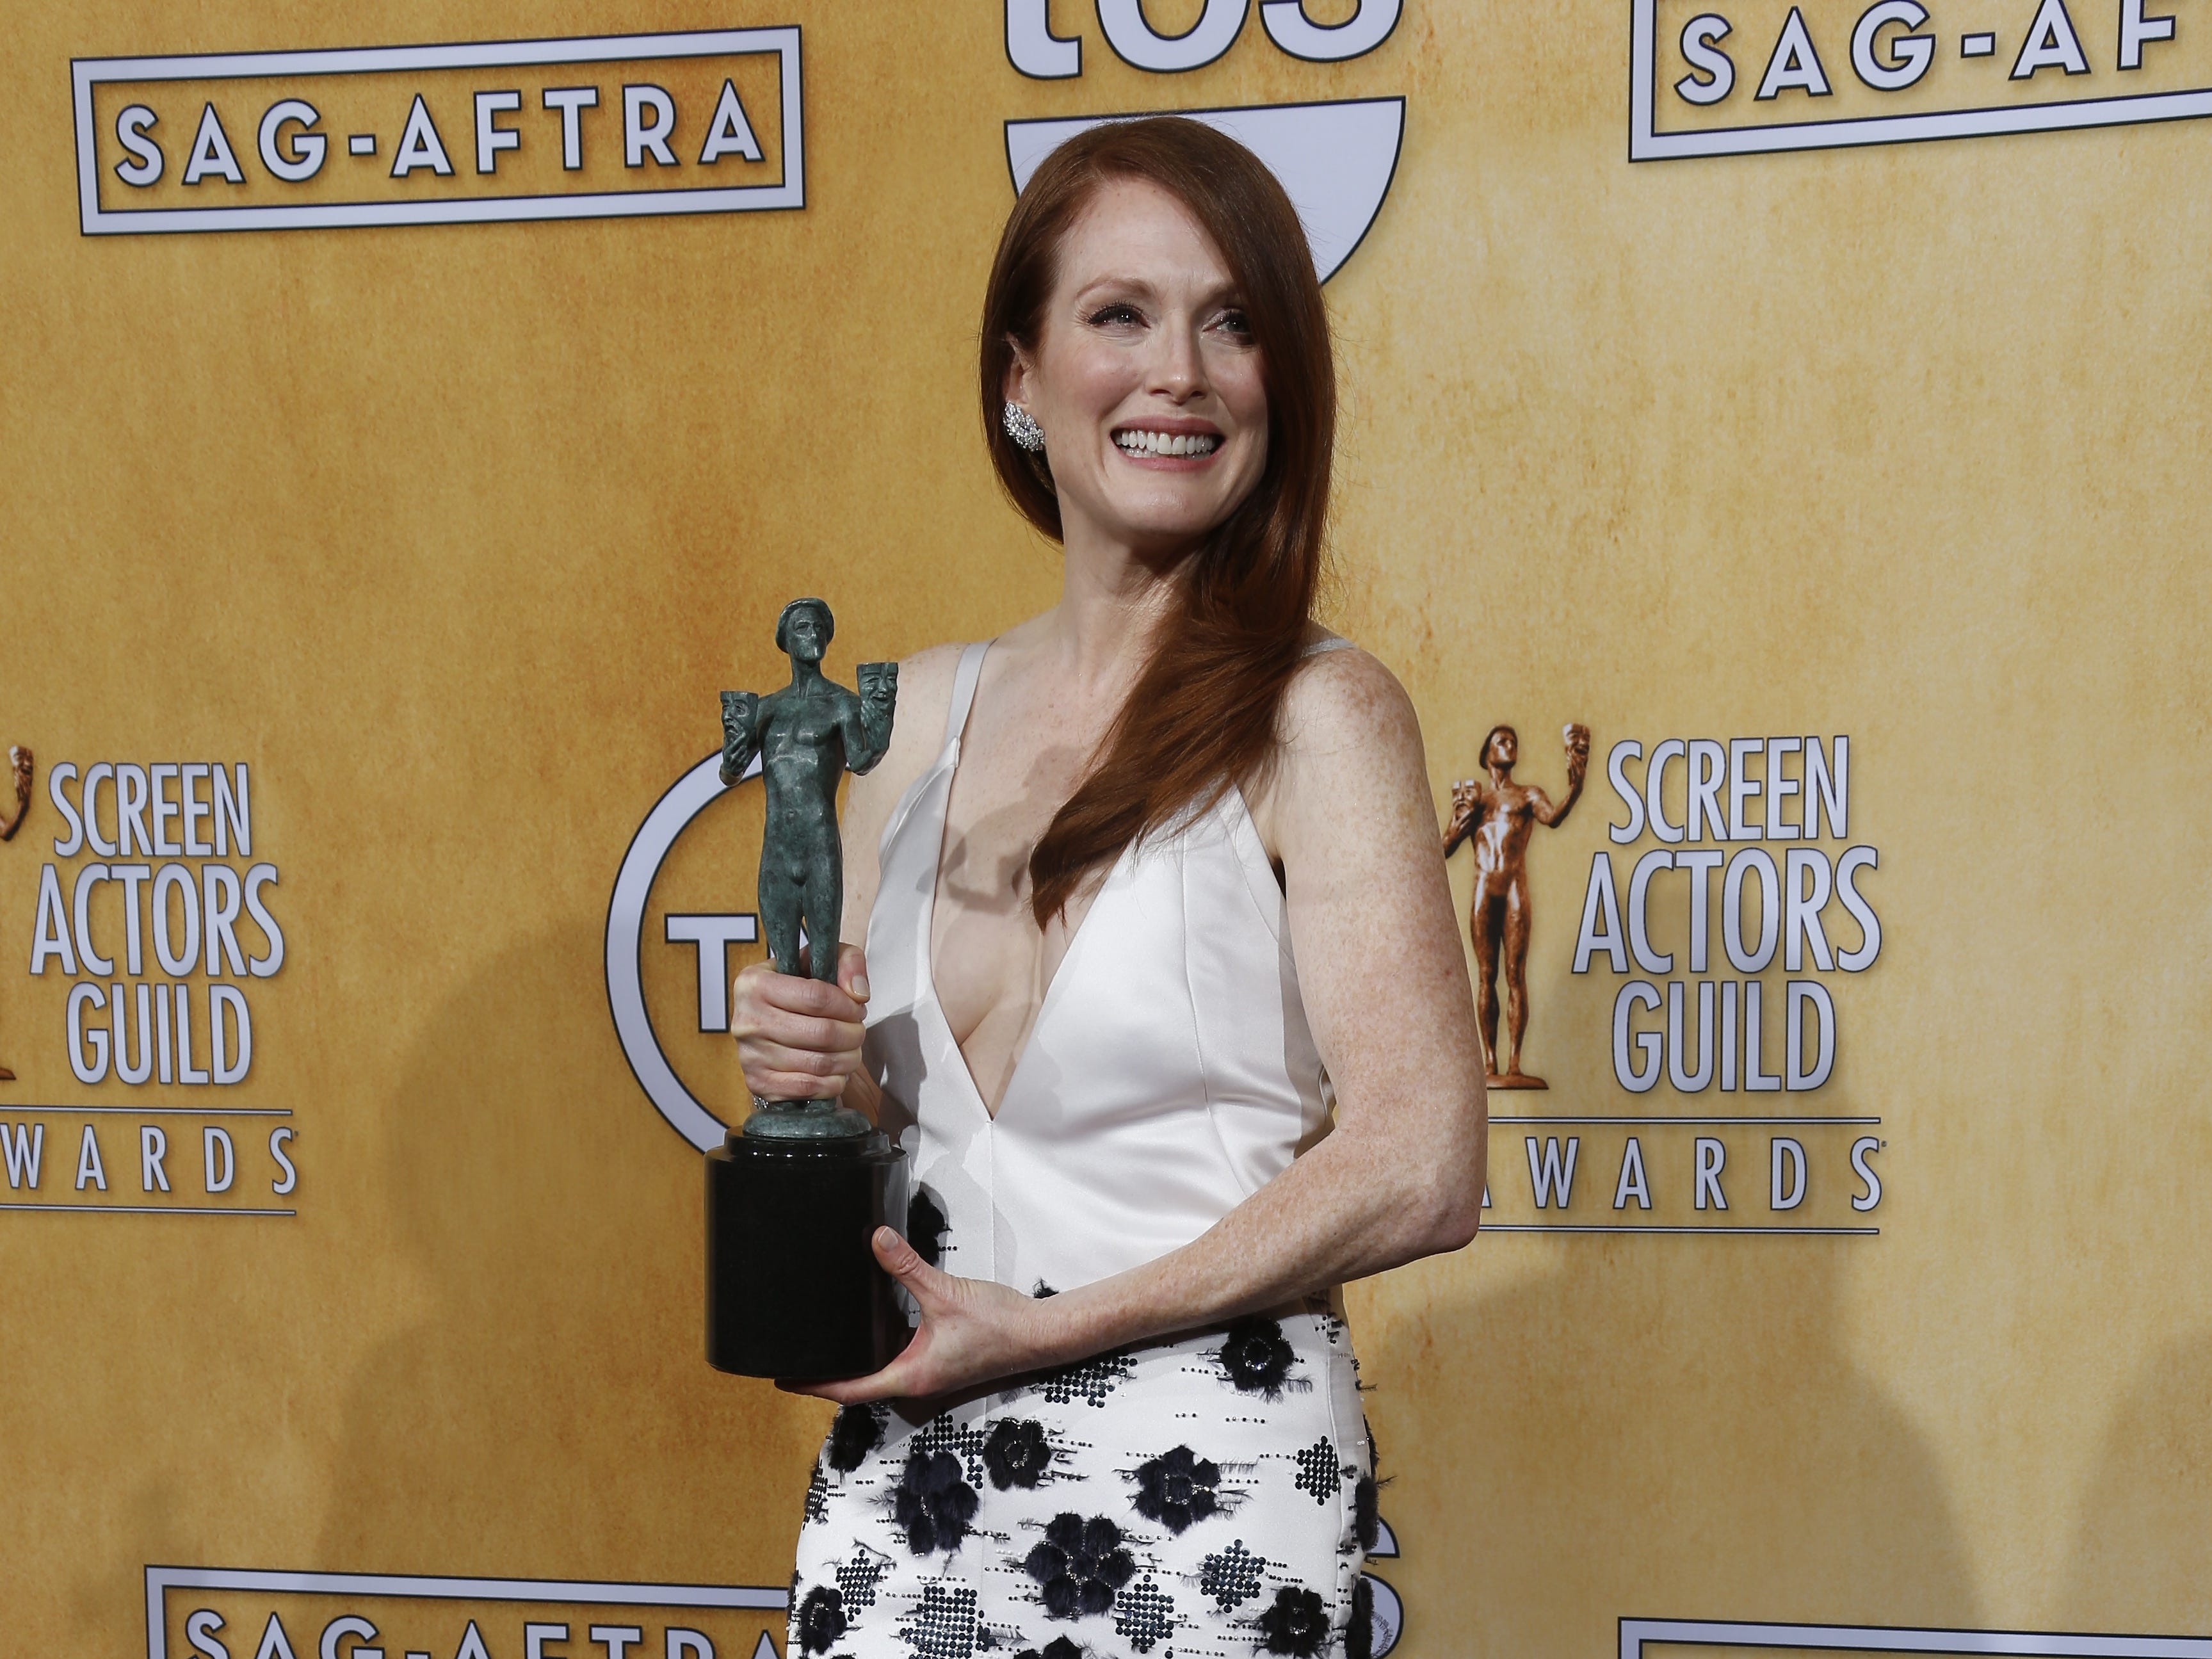 Julianne Moore, winner Outstanding Performance by a Female Actor in a Television Movie or Miniseries, poses in the photo room at the Screen Actors Guild awards at the Shrine Auditorium in Los Angeles.